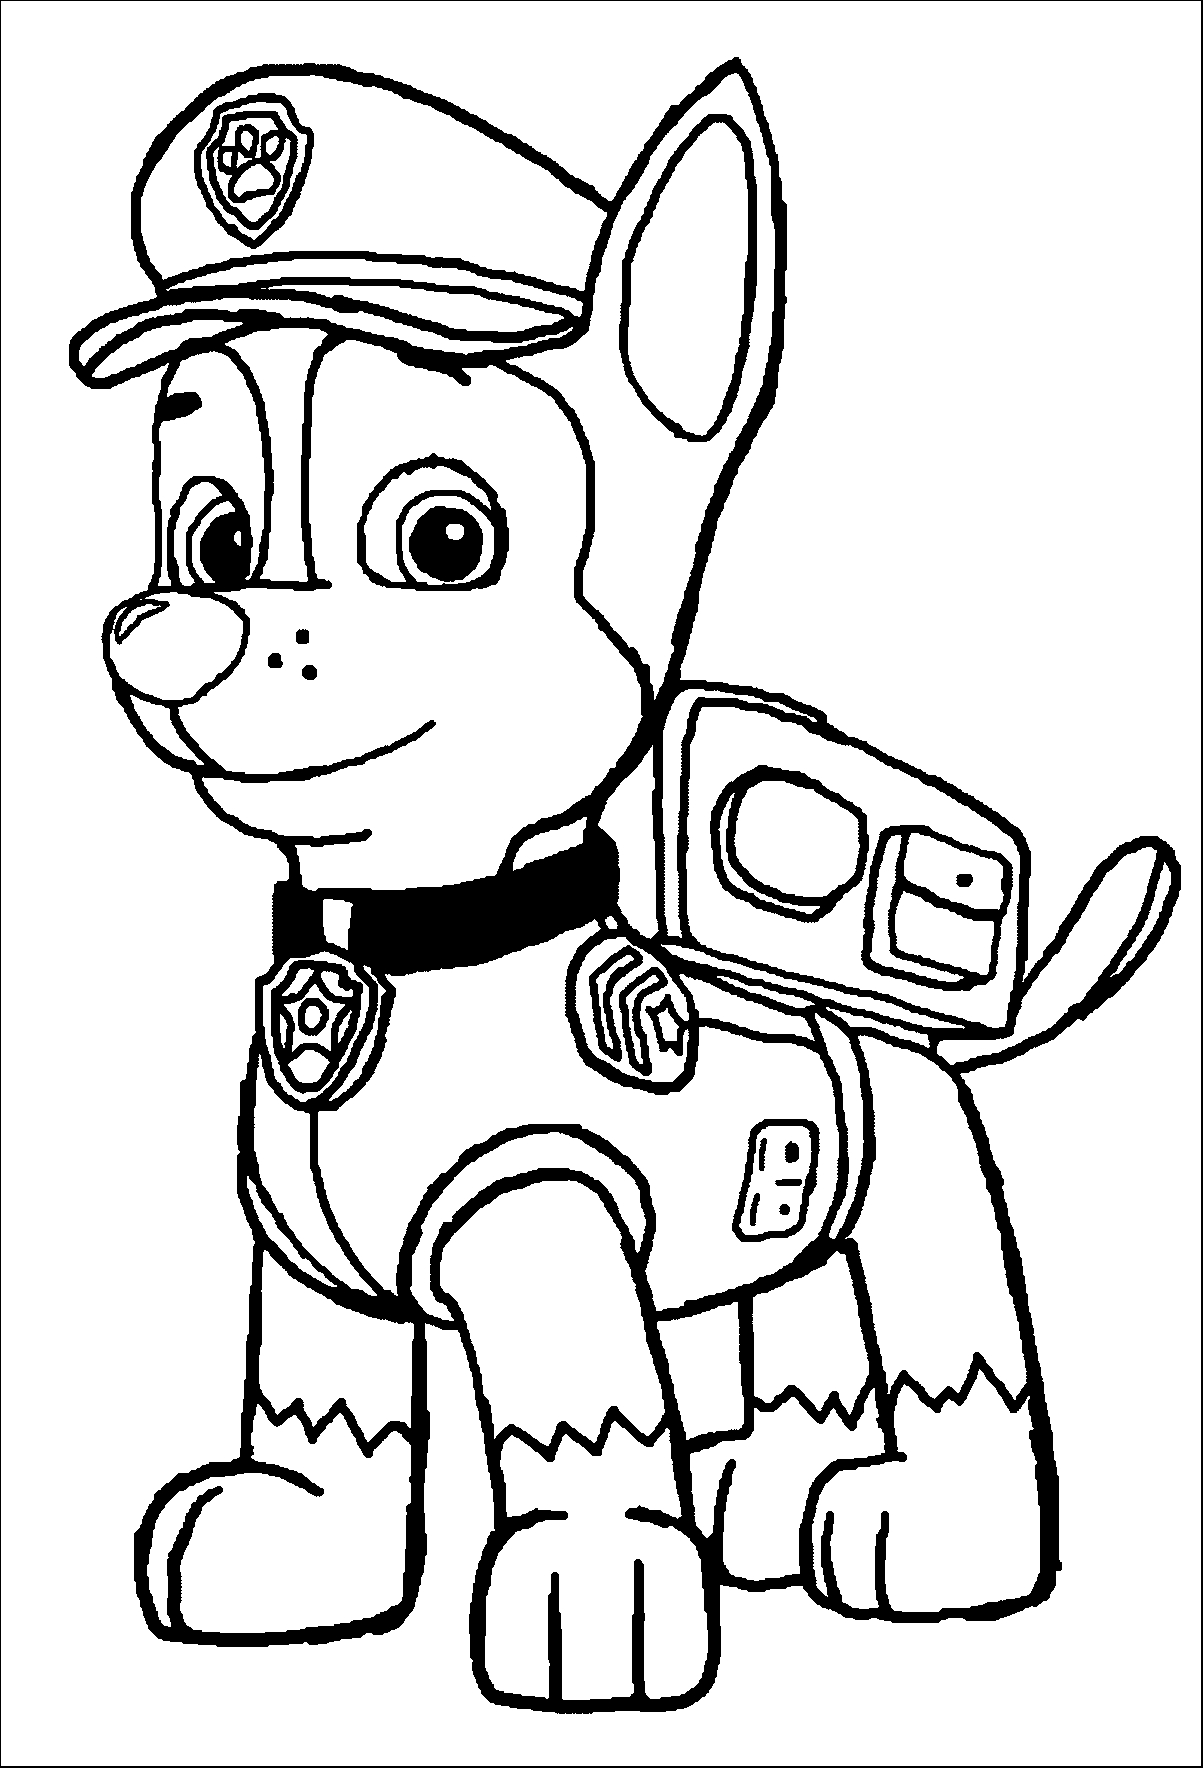 paw patrol coloring outline paw patrol coloring pages best coloring pages for kids patrol outline coloring paw